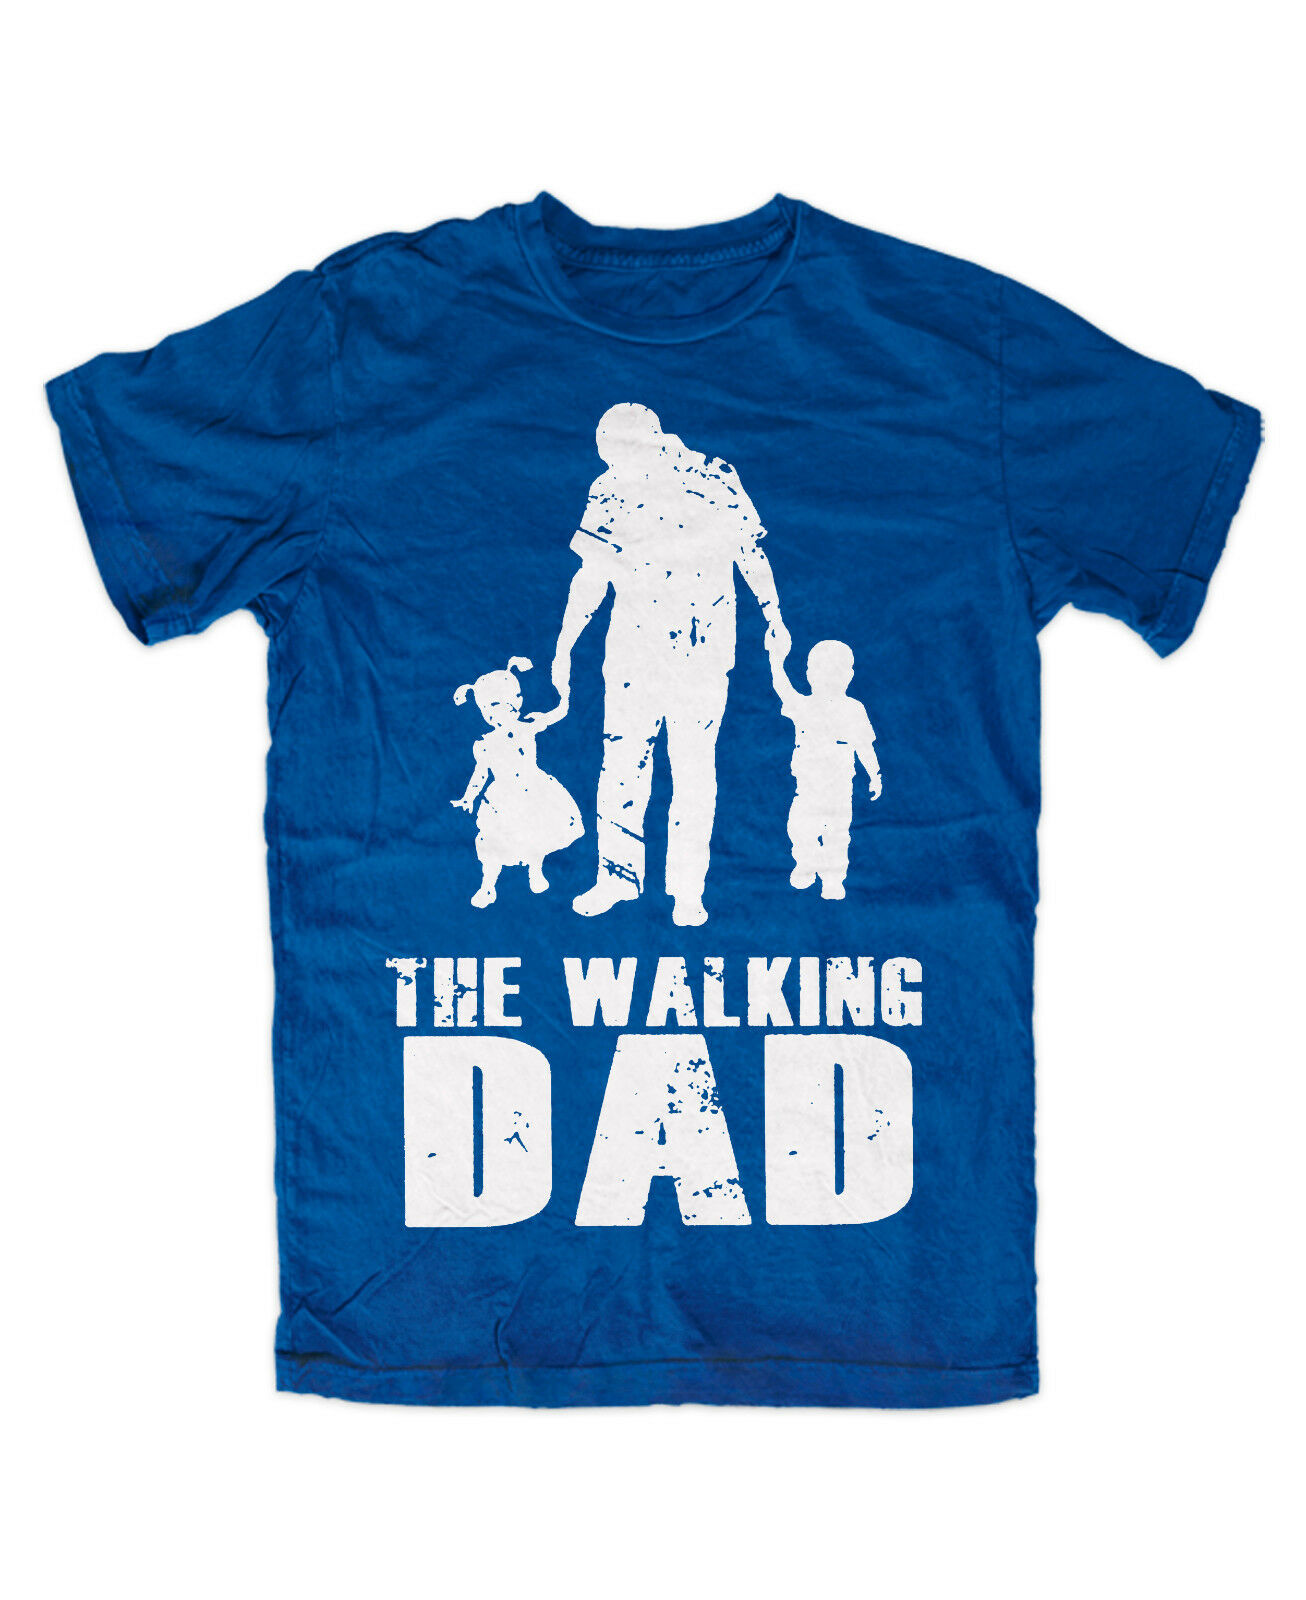 The Walking DAD T-Shirt BLAU Vater Spruch Fun Kult Familie PAPA Superheld